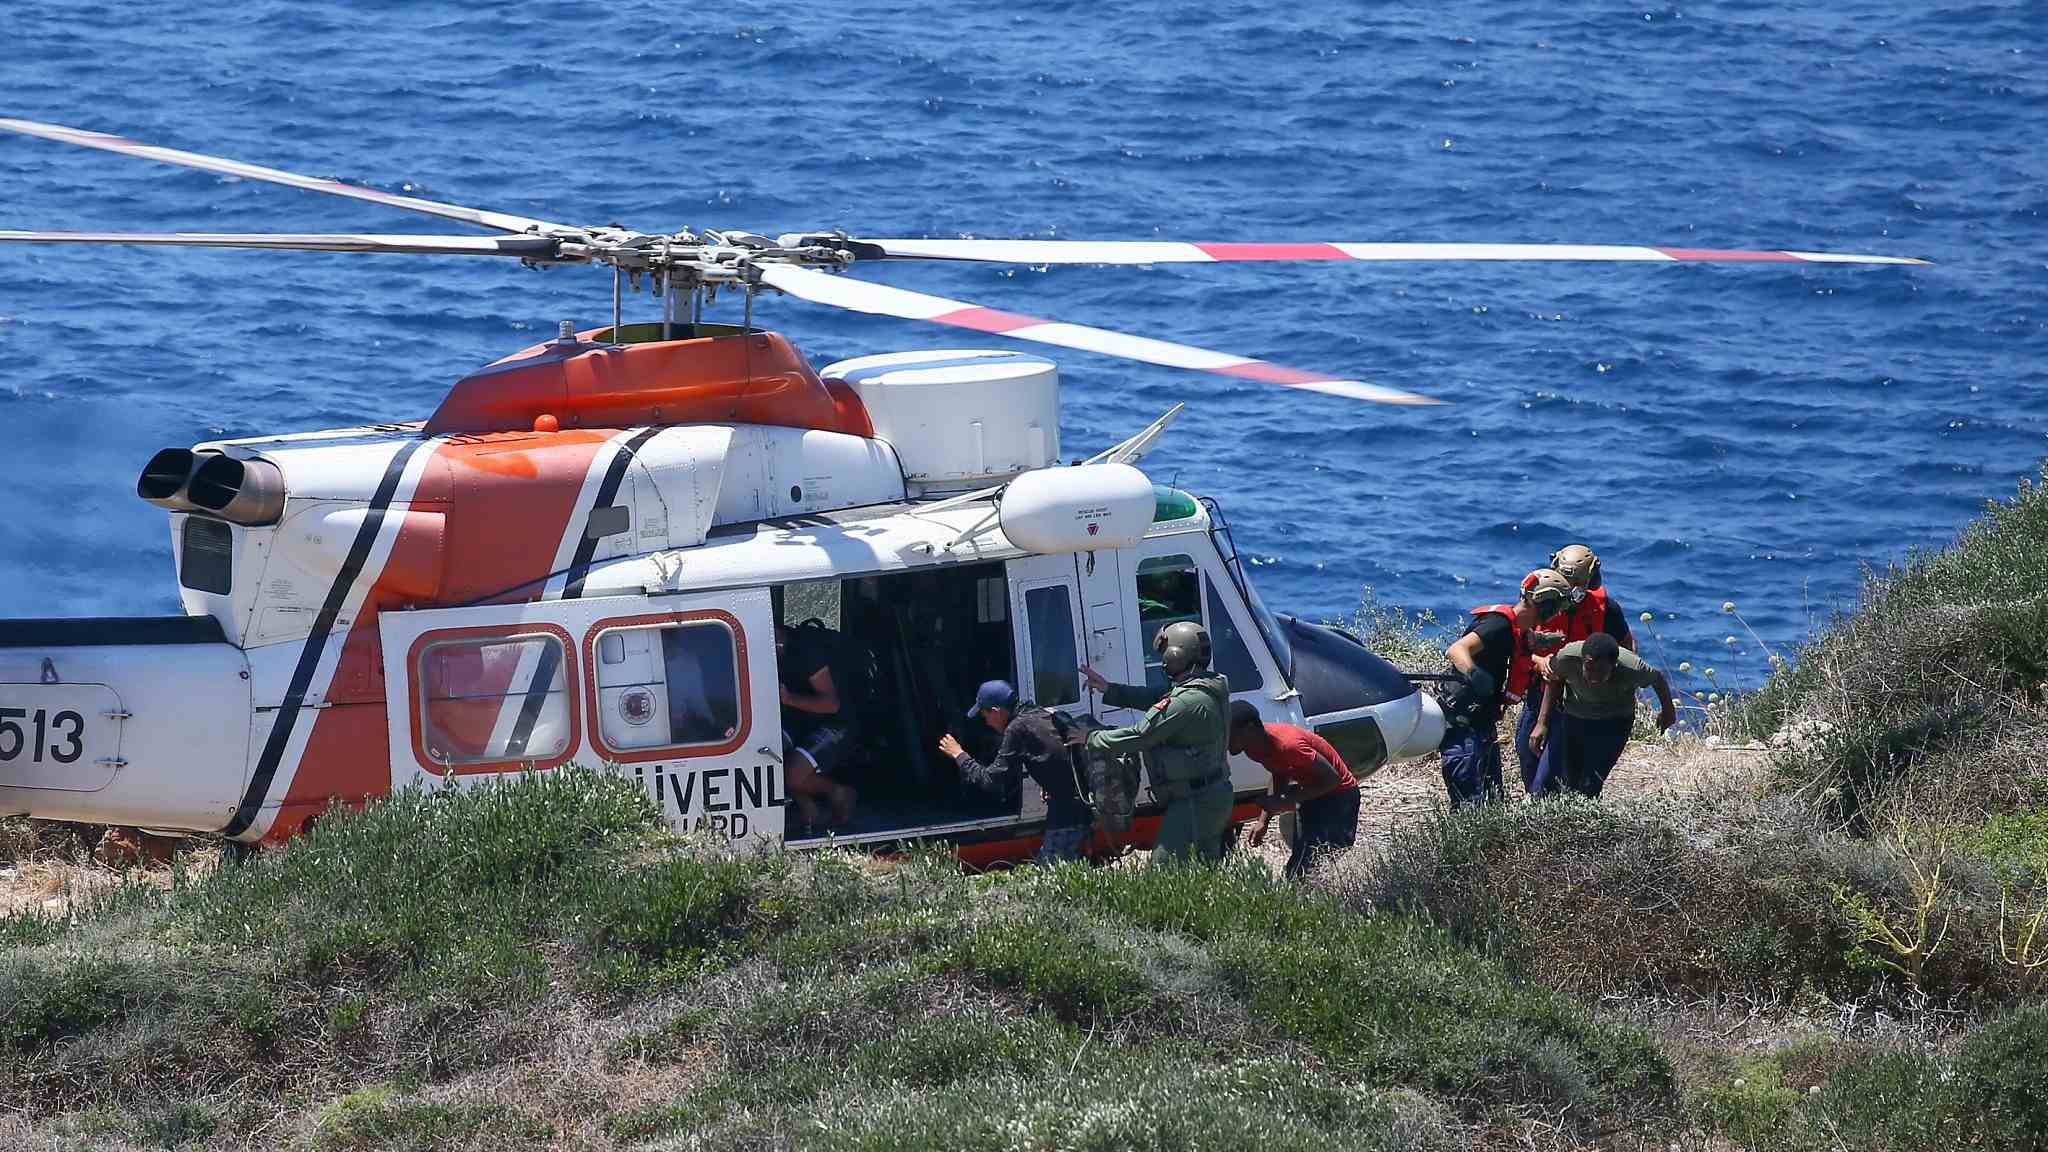 34 stranded migrants rescued by Turkish Coast Guard